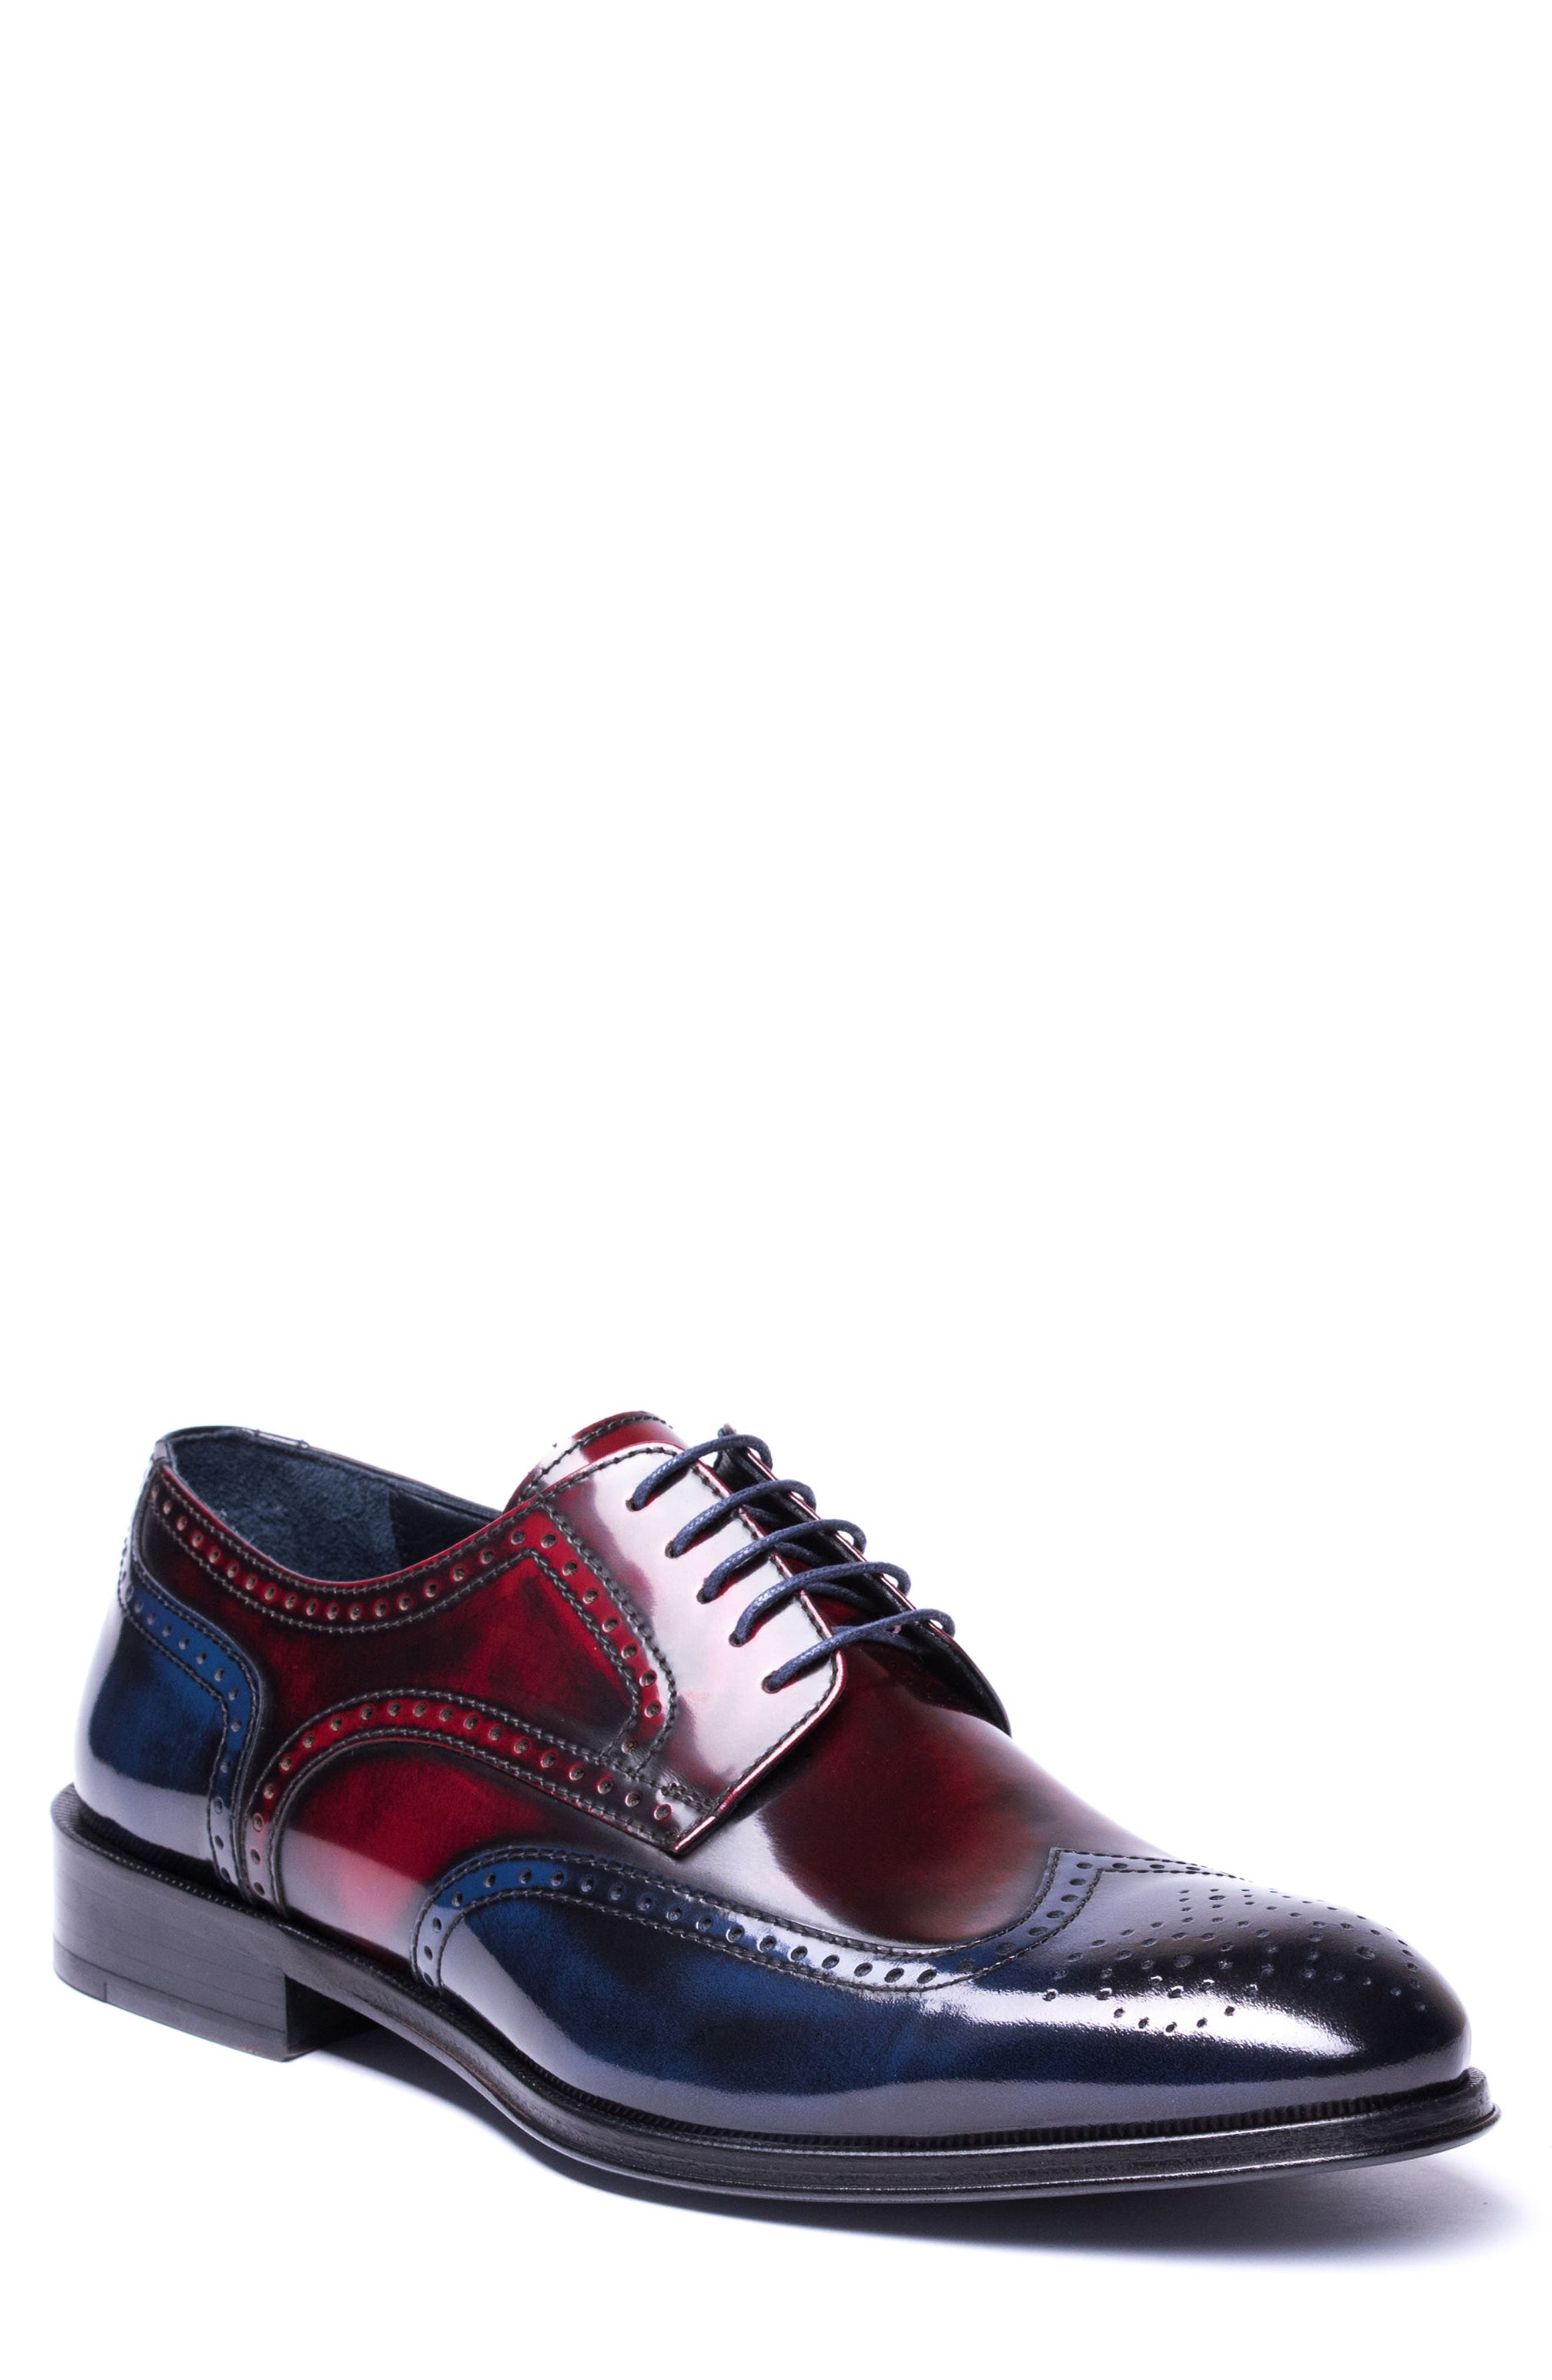 Bryce Wingtip Derby,                         Main,                         color, Red/ Blue Leather